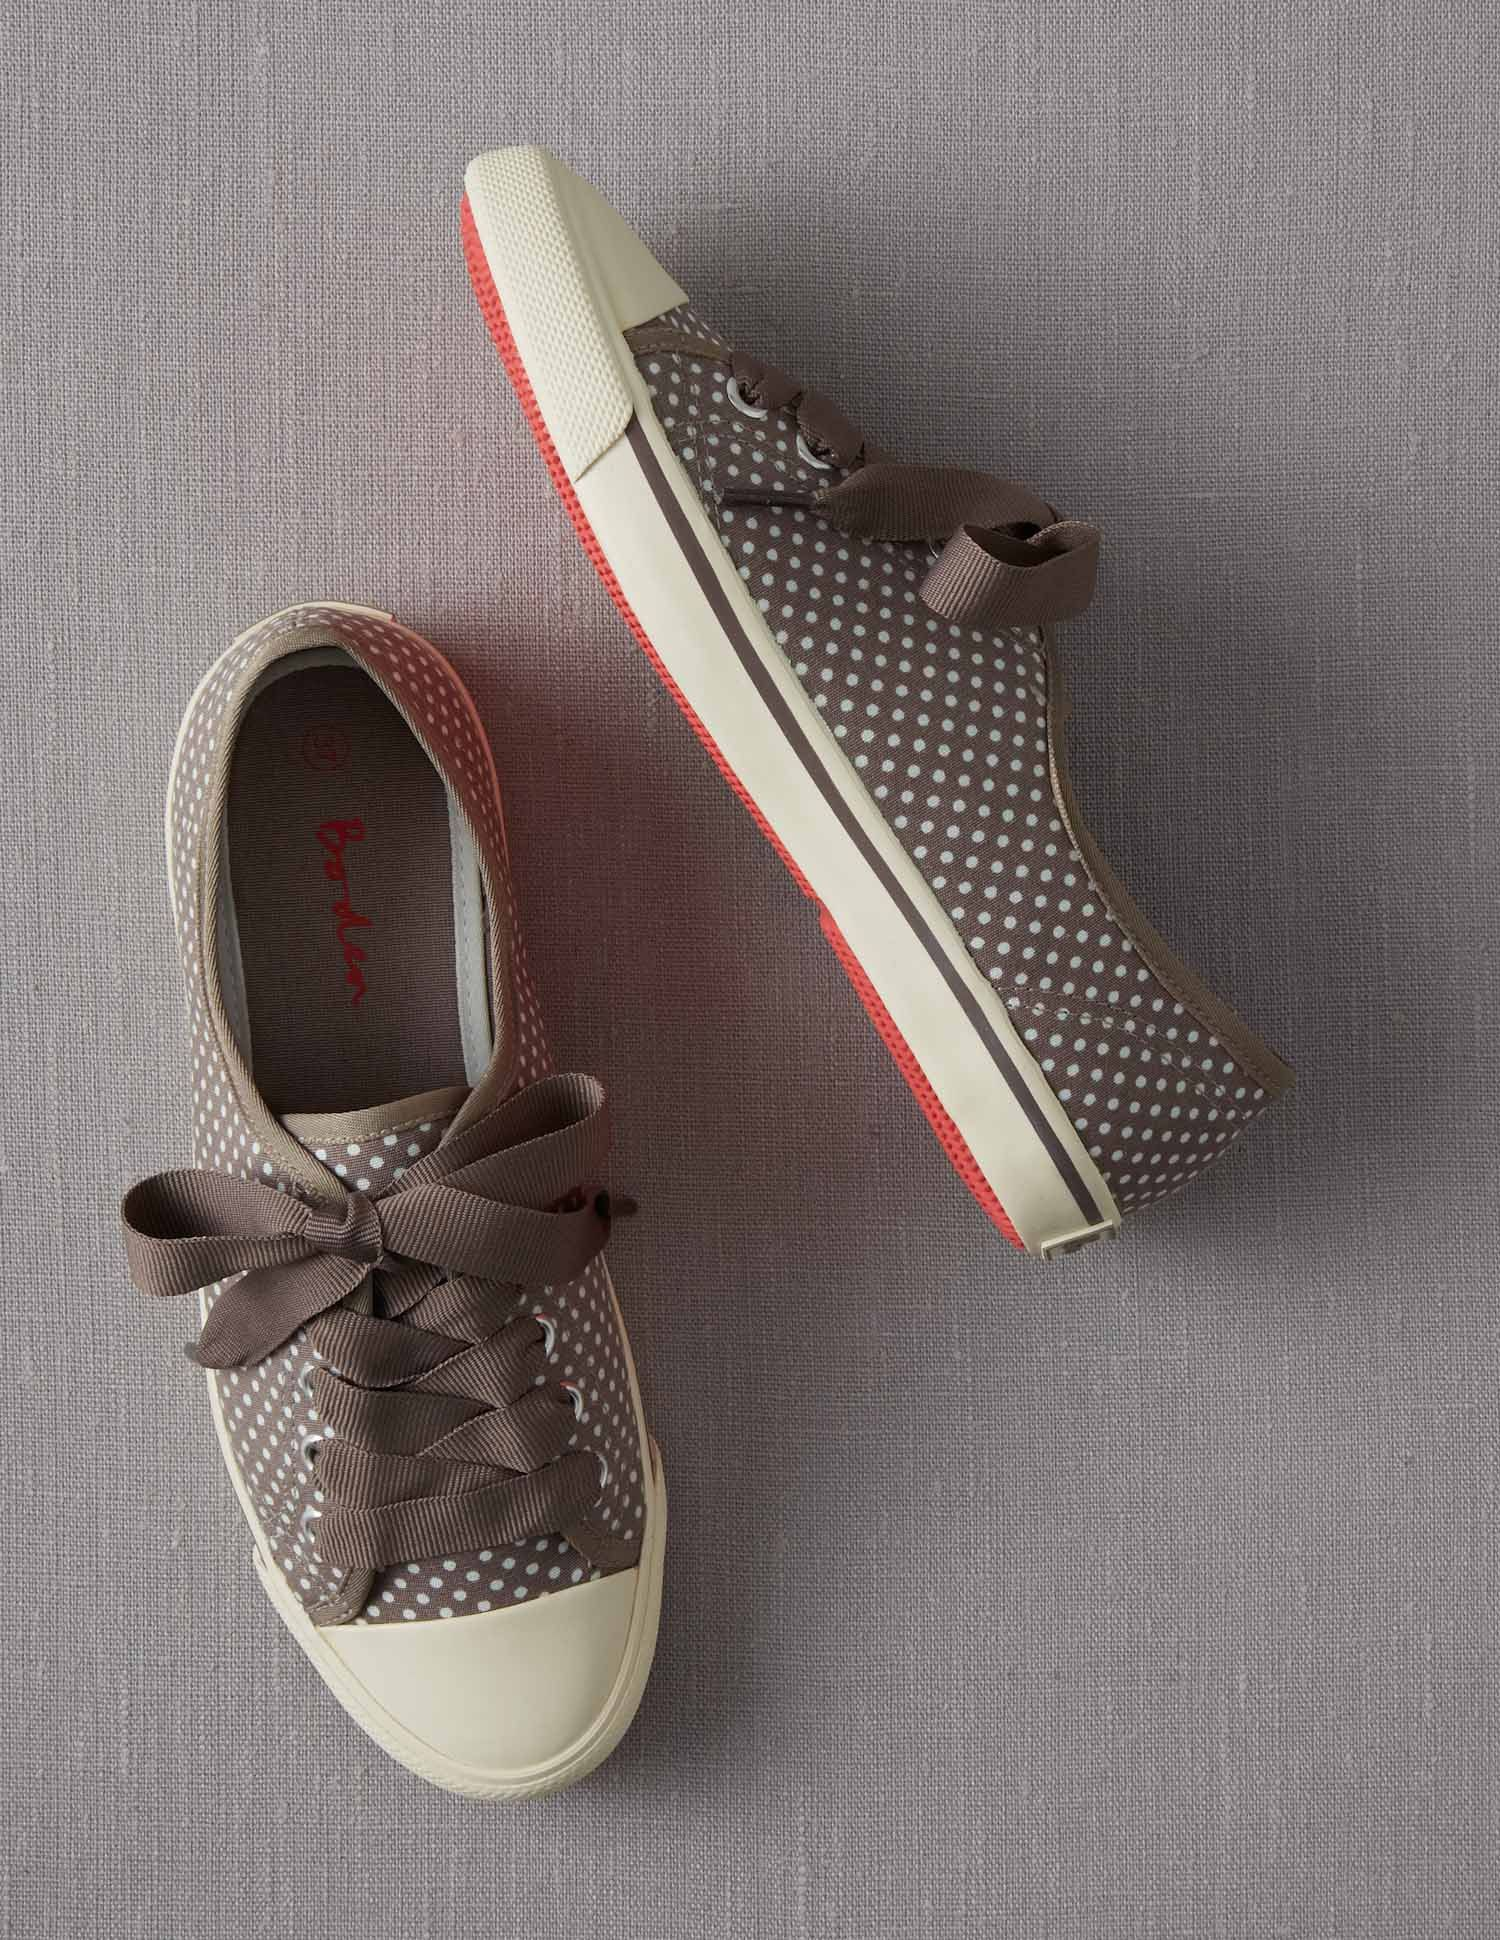 Spotty Canvas Plimsolls $58.00 perfect for spring/summer city walking